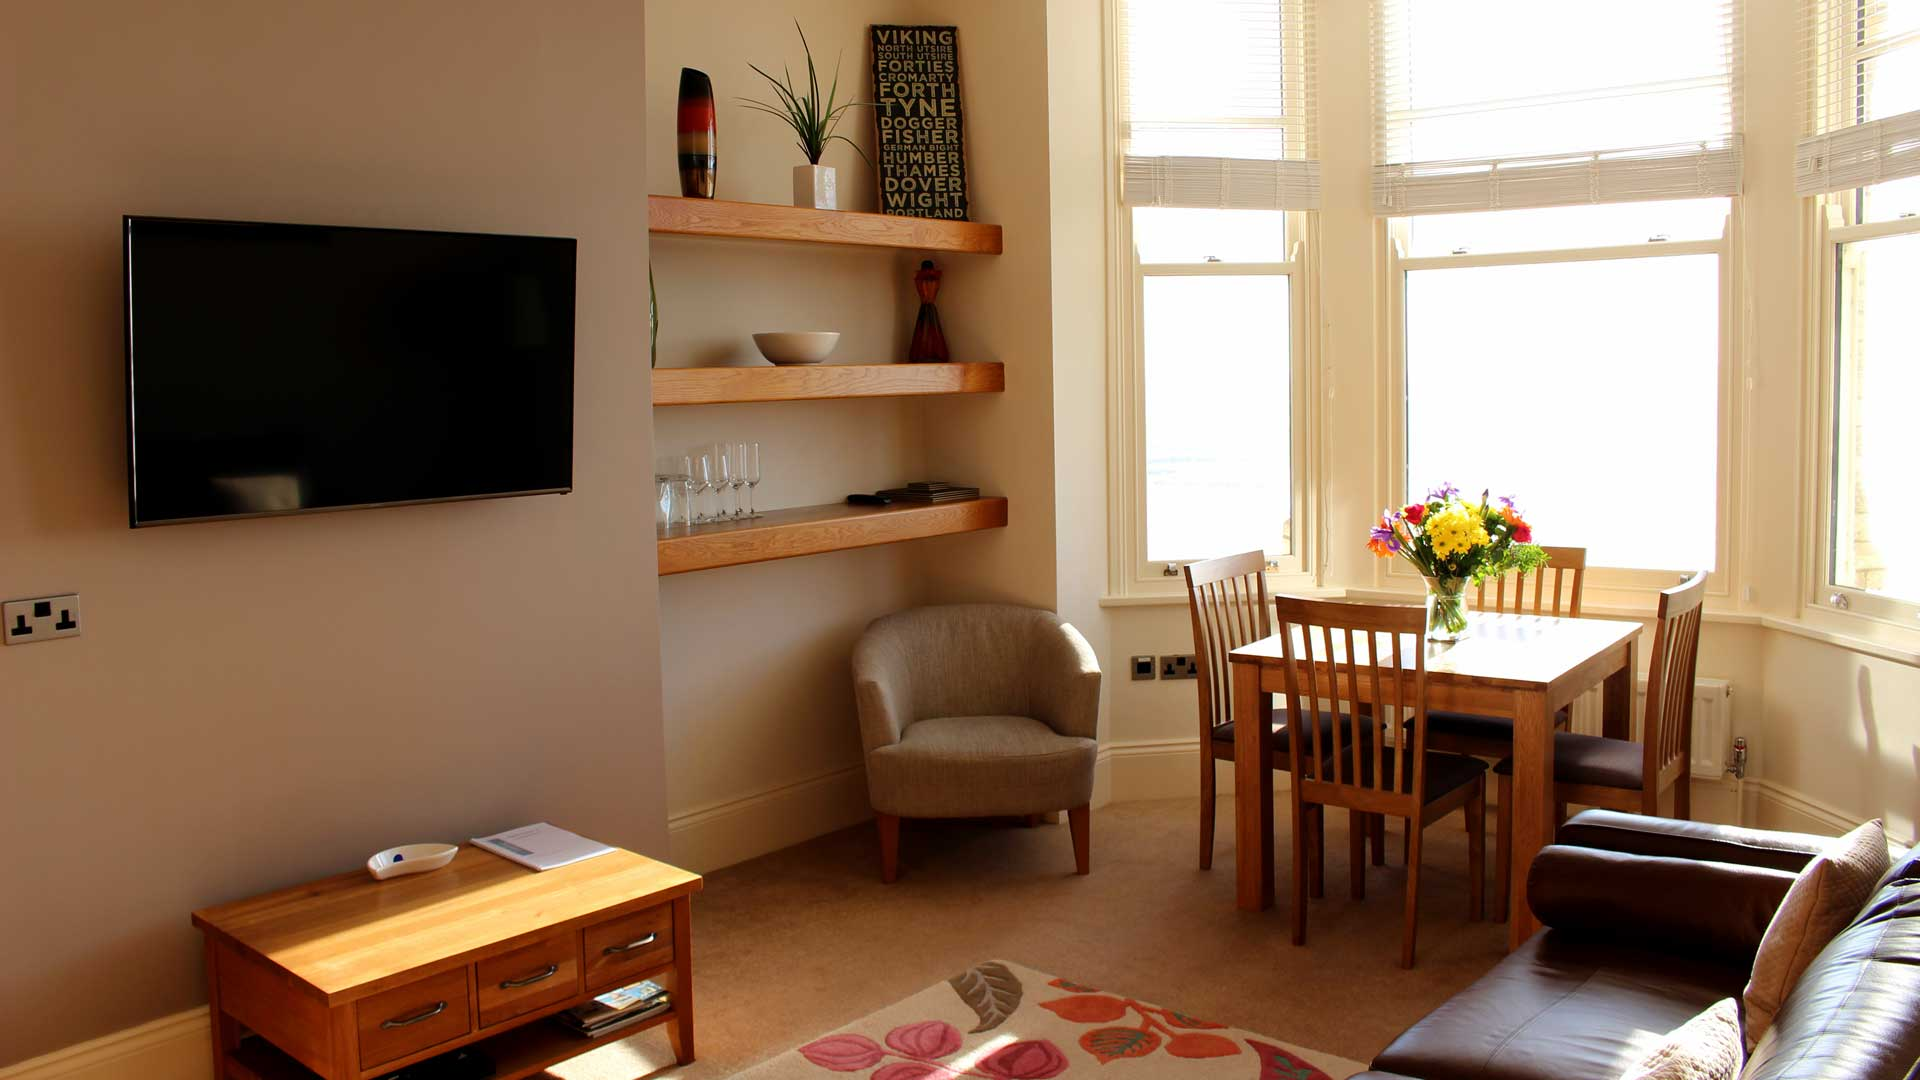 Apartment 2, The Landings, Filey, Lounge 9